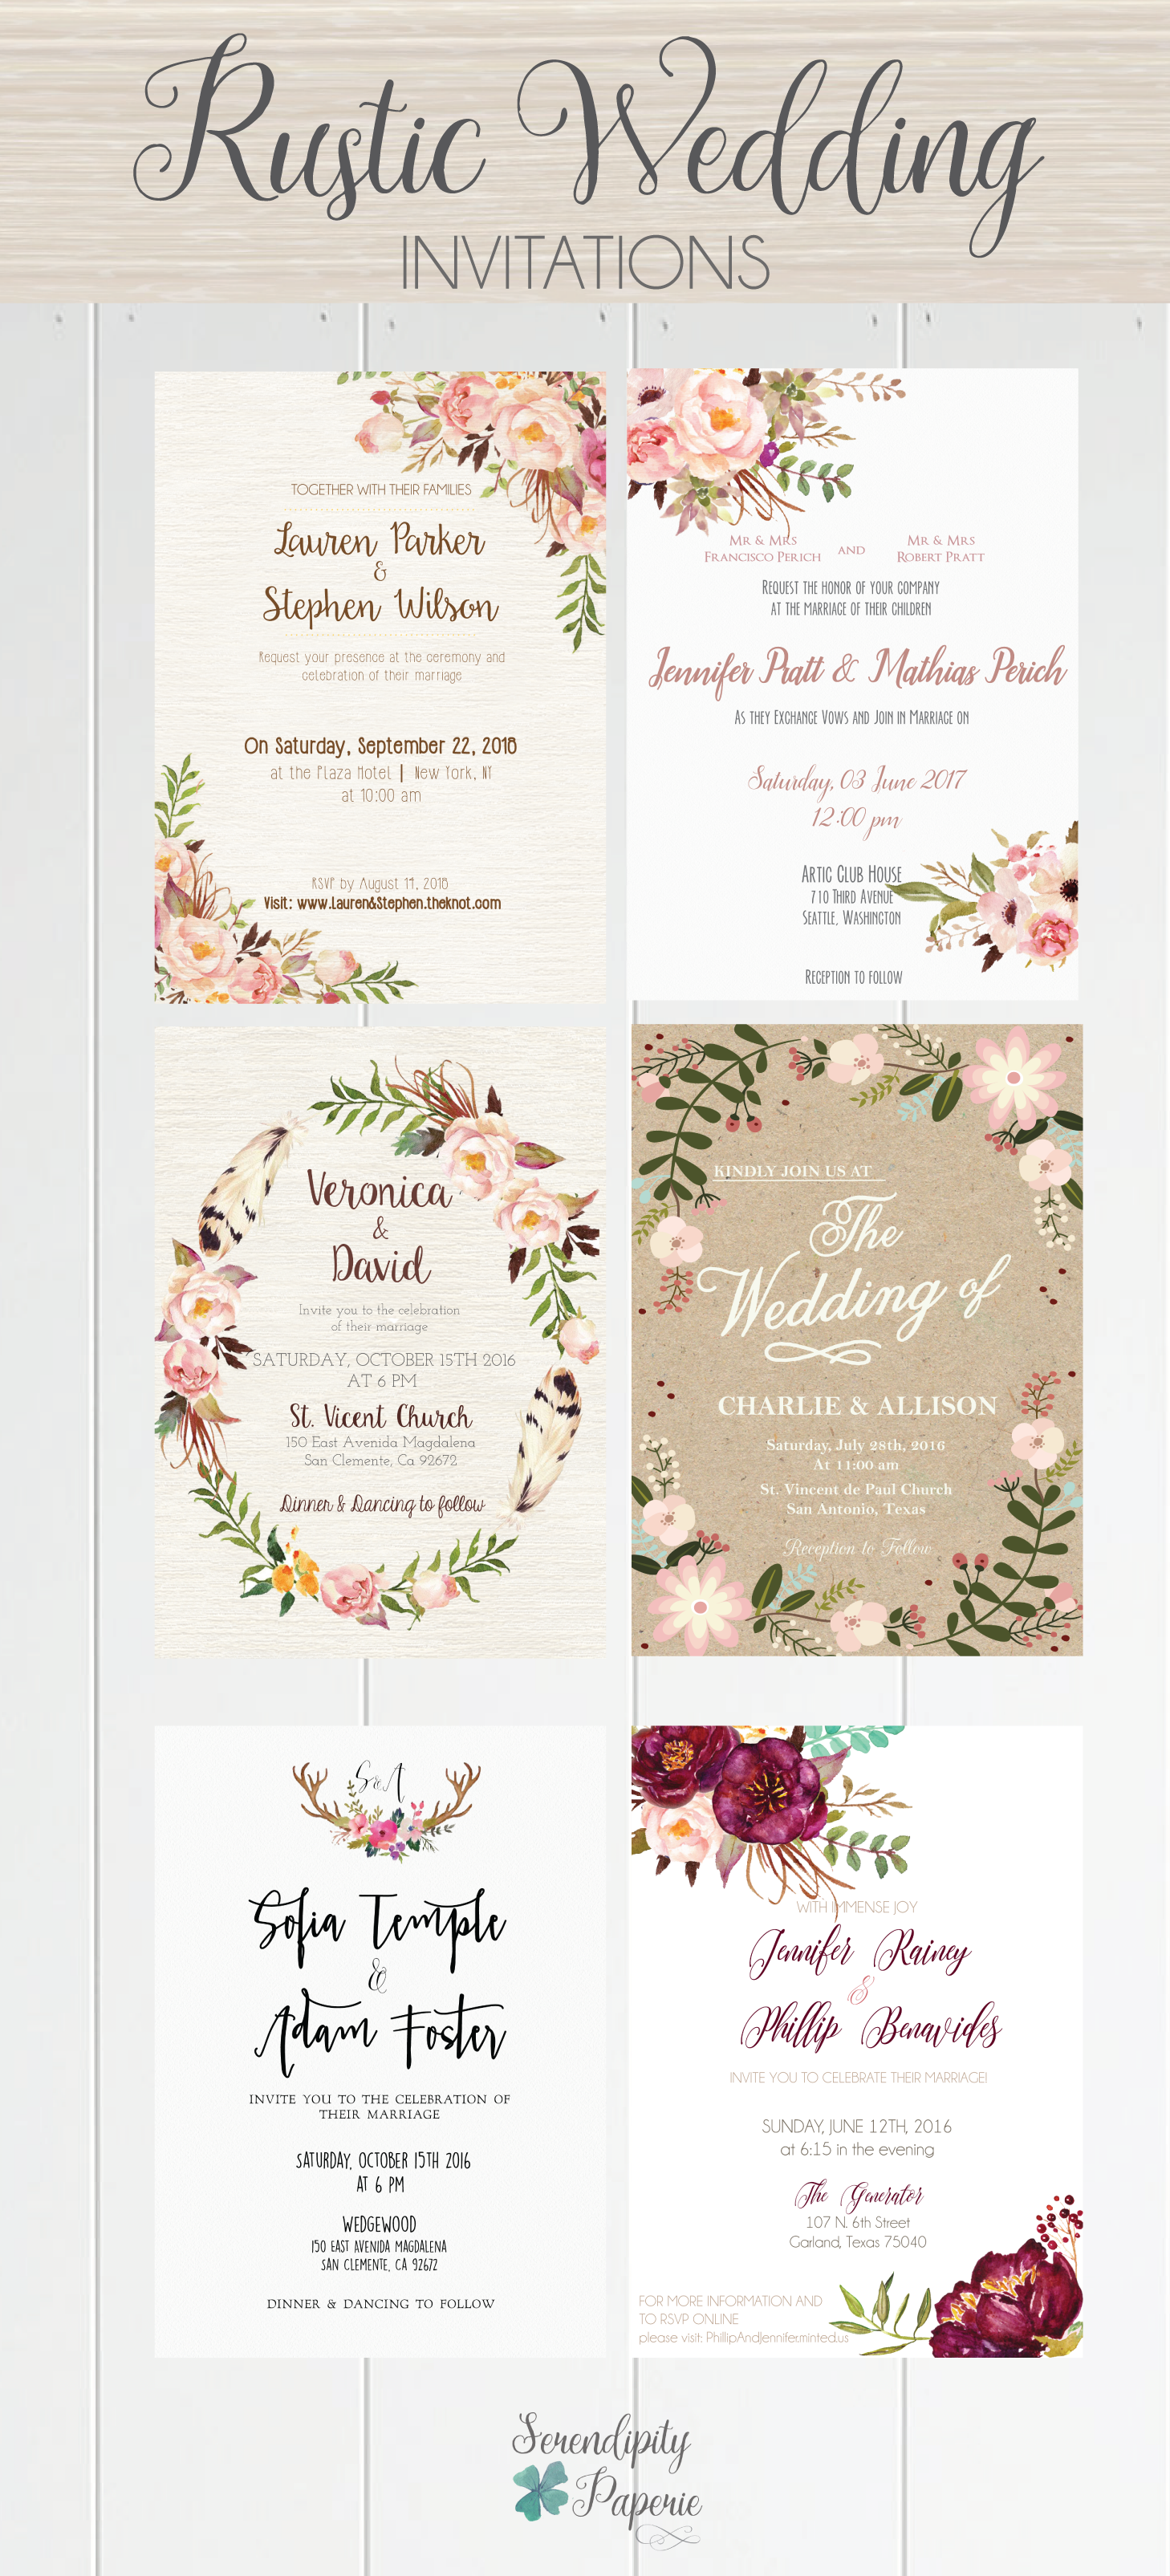 A beautiful selection of printable wedding invitations from rustic